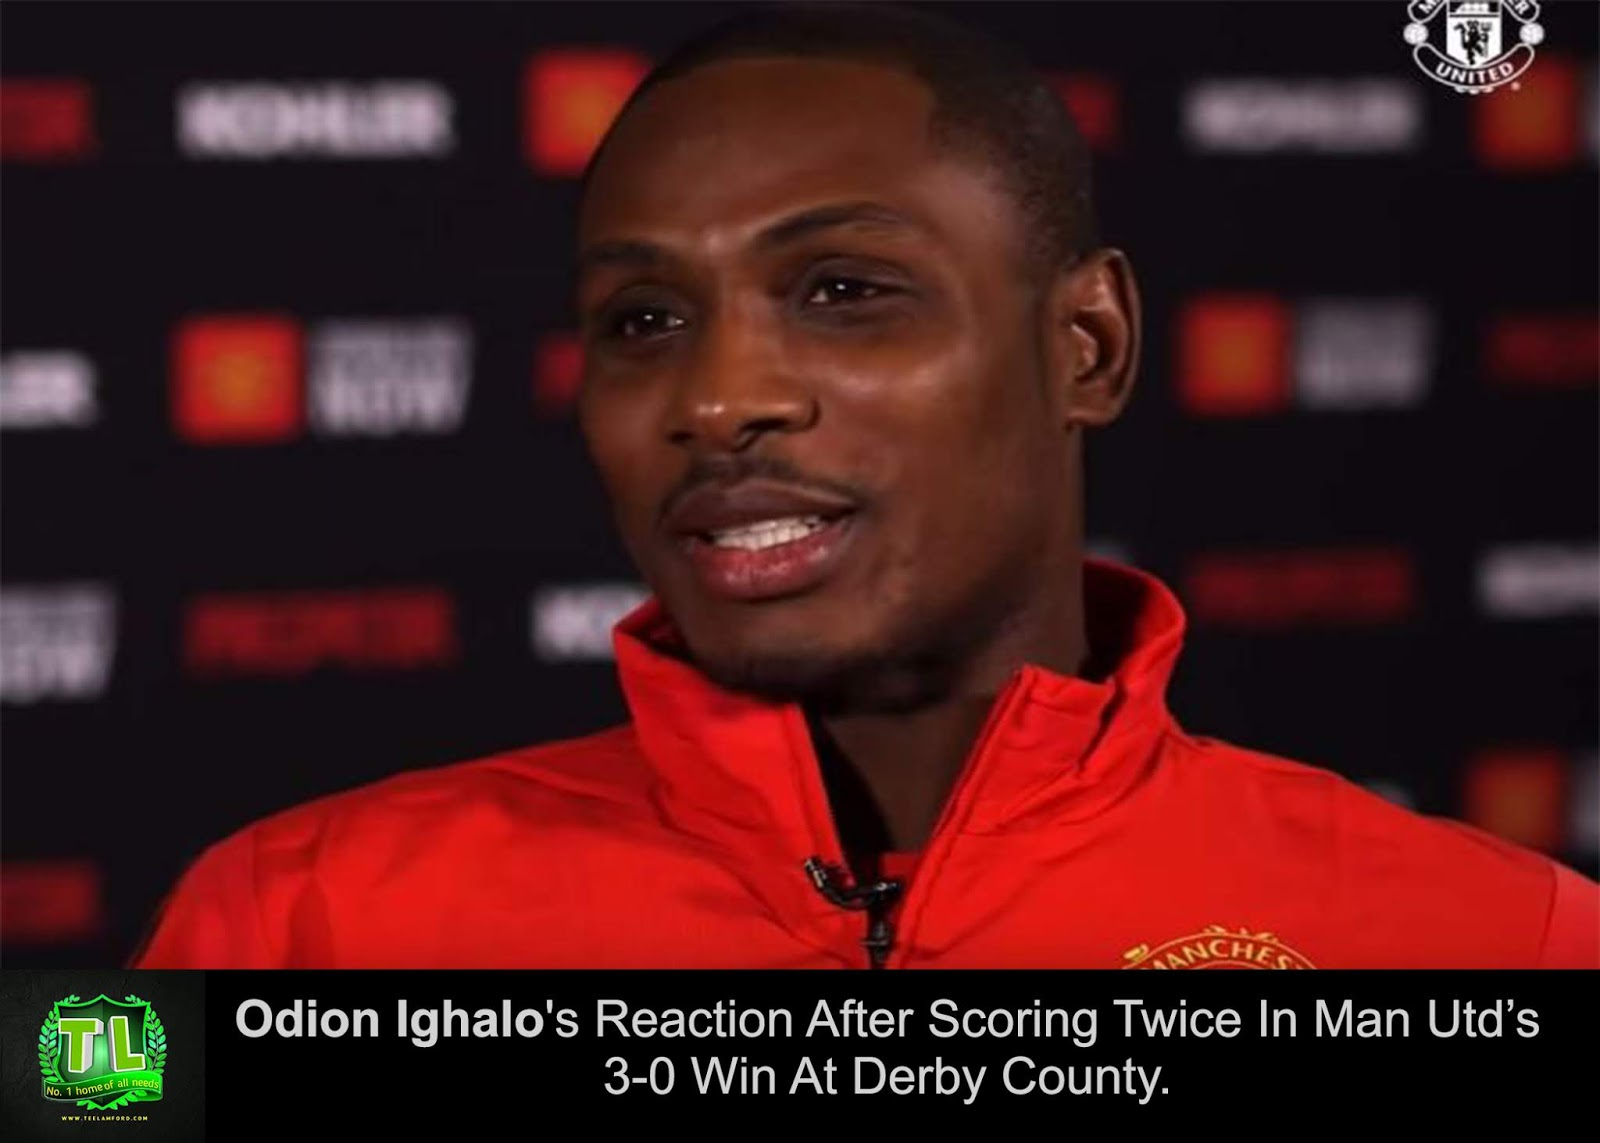 Odion Ighalo's Reaction After Scoring Twice In Man Utd's 3-0 Win At Derby County teelamford